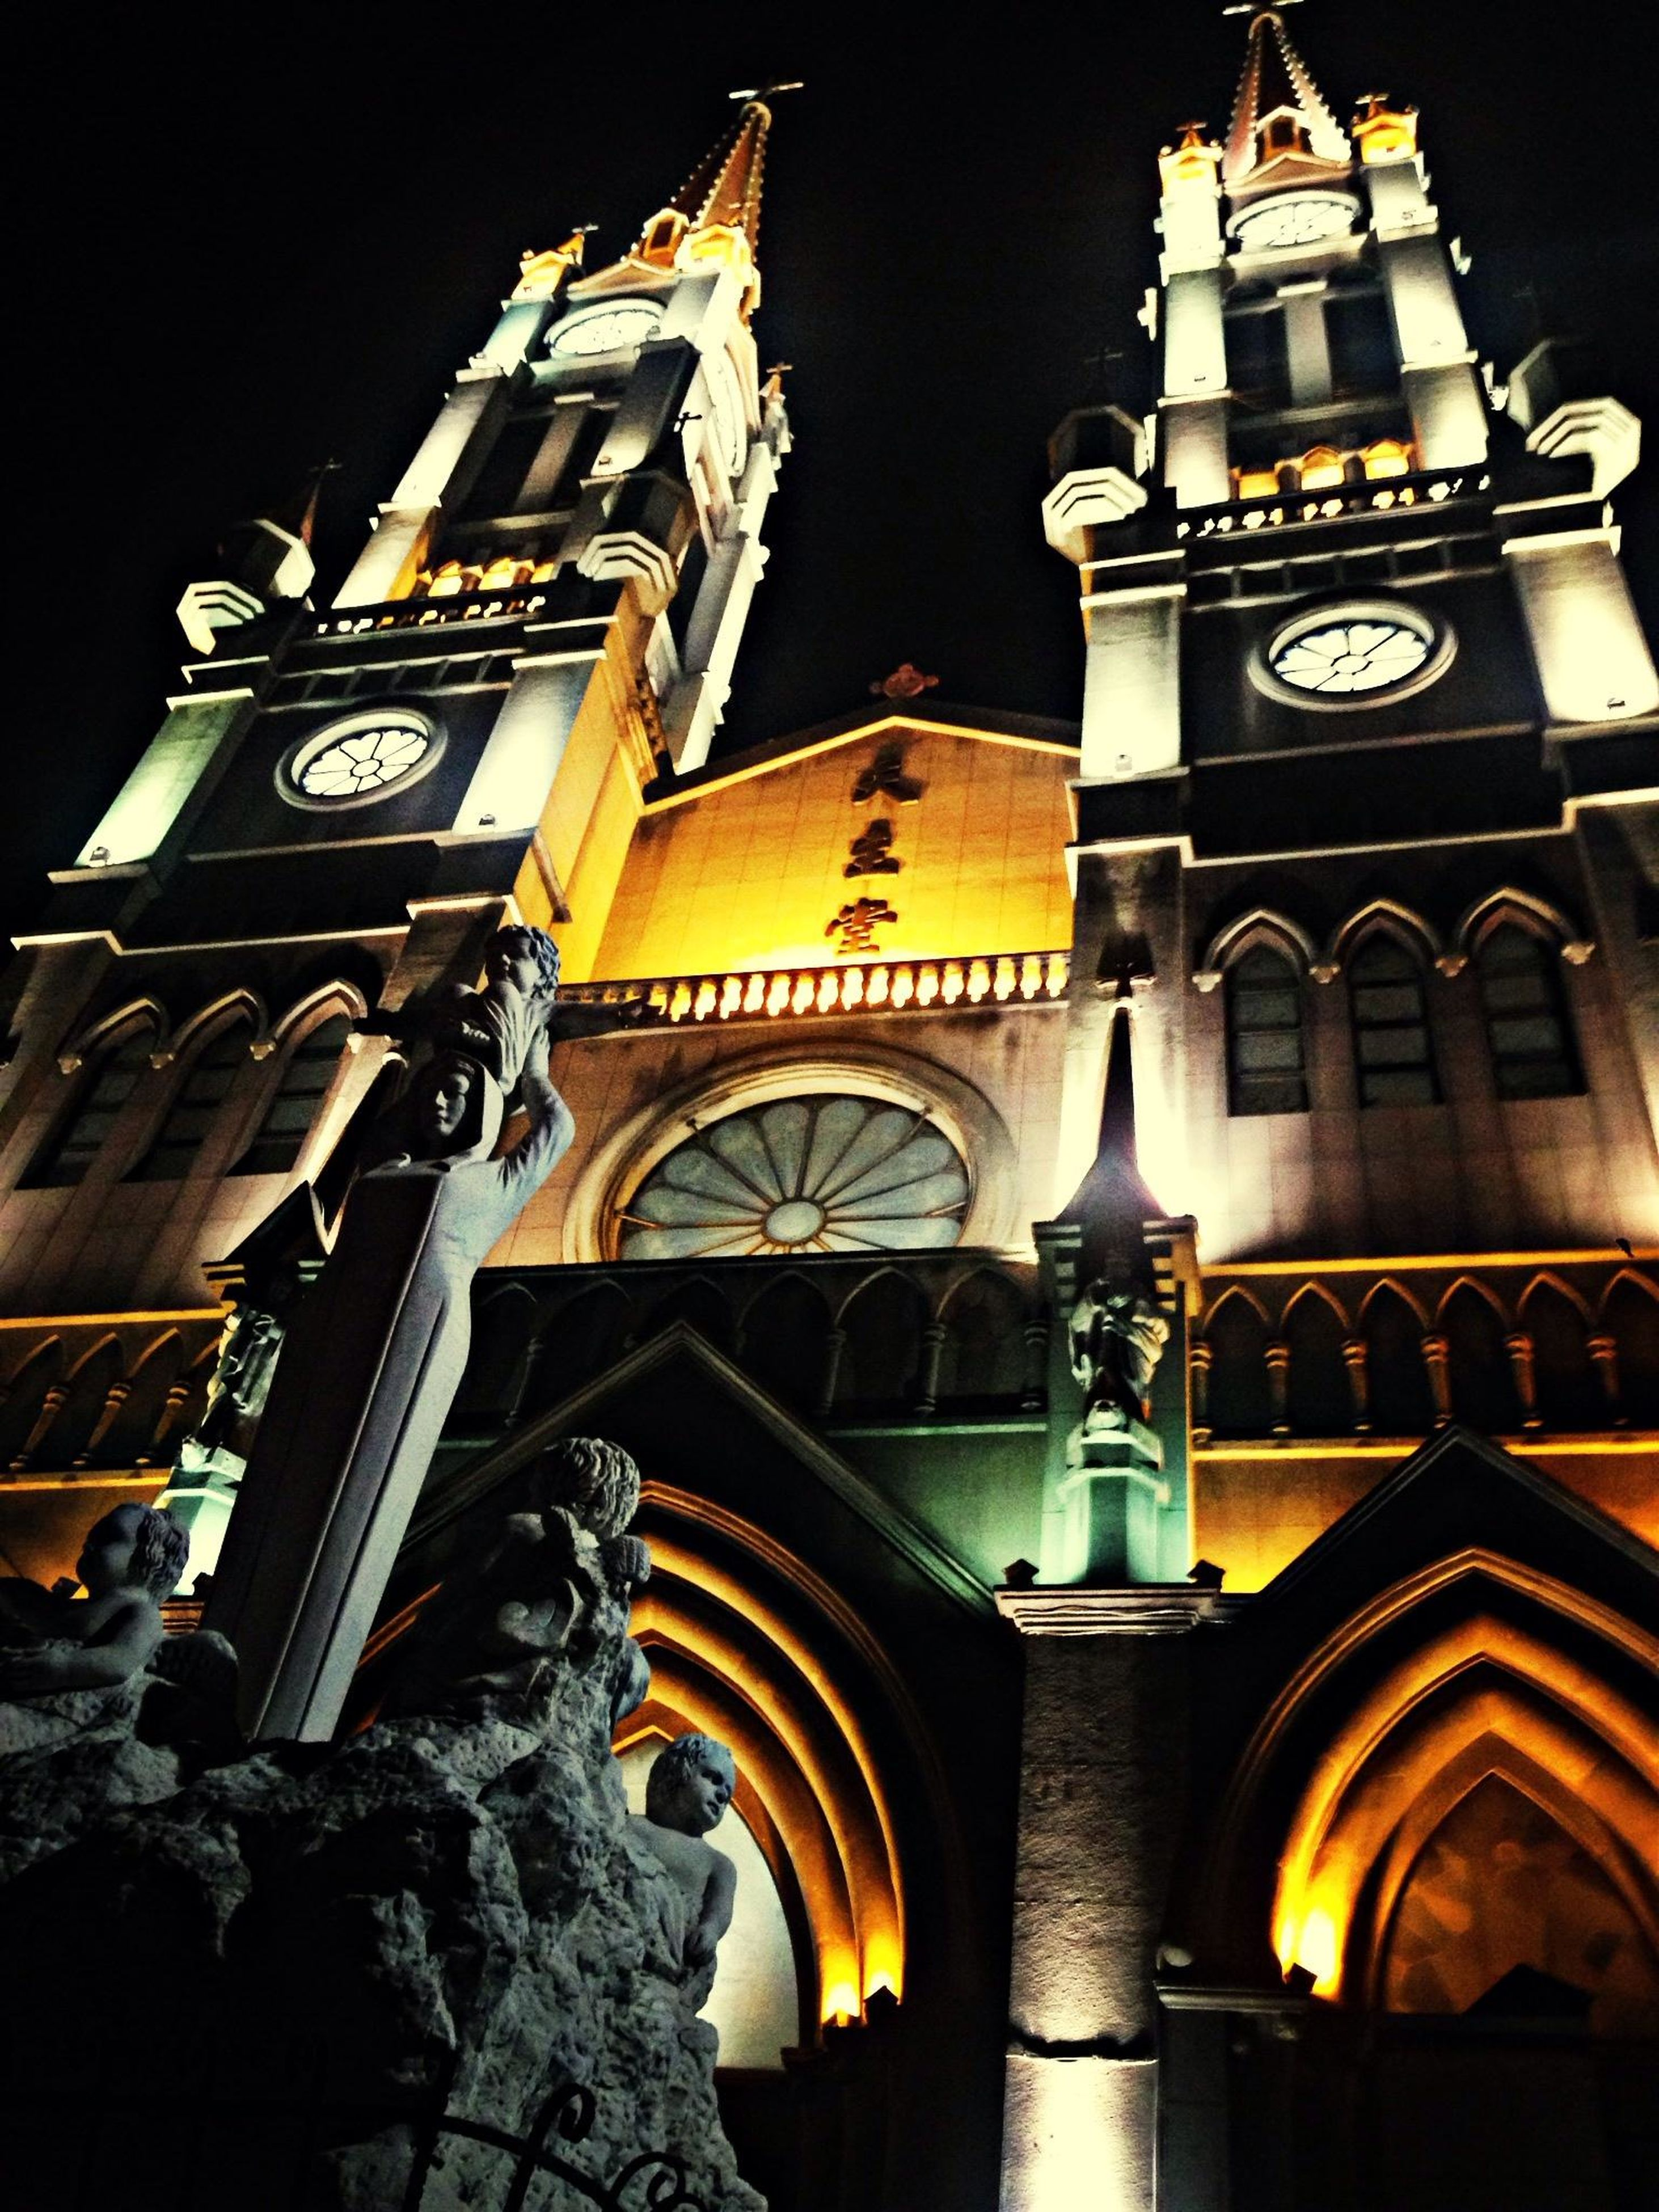 architecture, building exterior, built structure, low angle view, illuminated, night, arch, clock tower, text, place of worship, church, city, religion, building, outdoors, clear sky, history, no people, sky